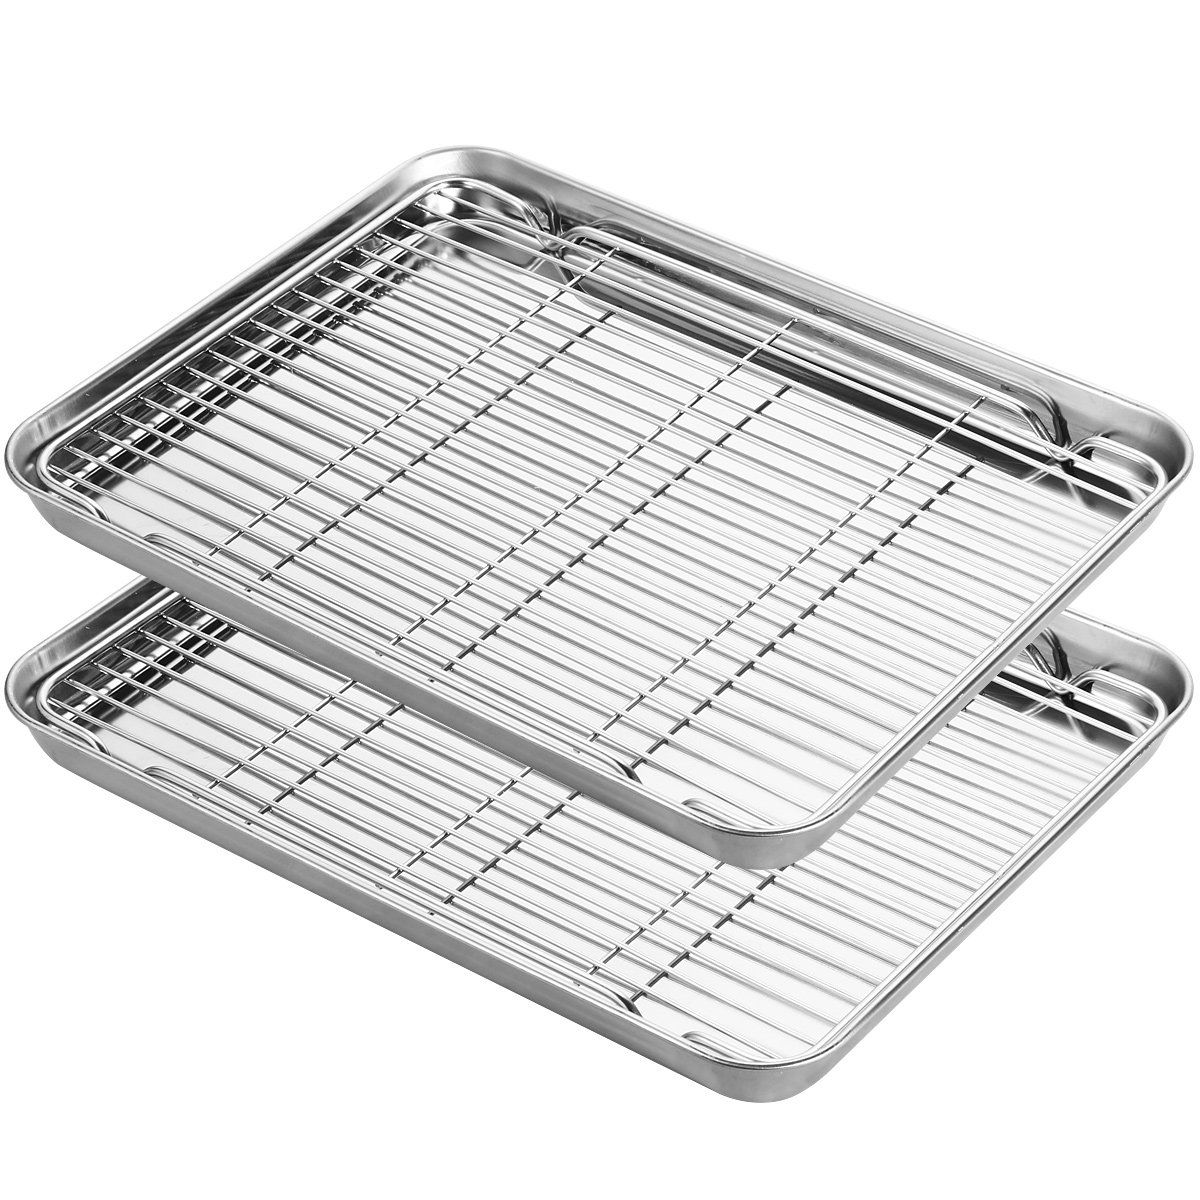 Stainless Steel Baking Sheets With Rack Hkj Chef Cookie Sheets